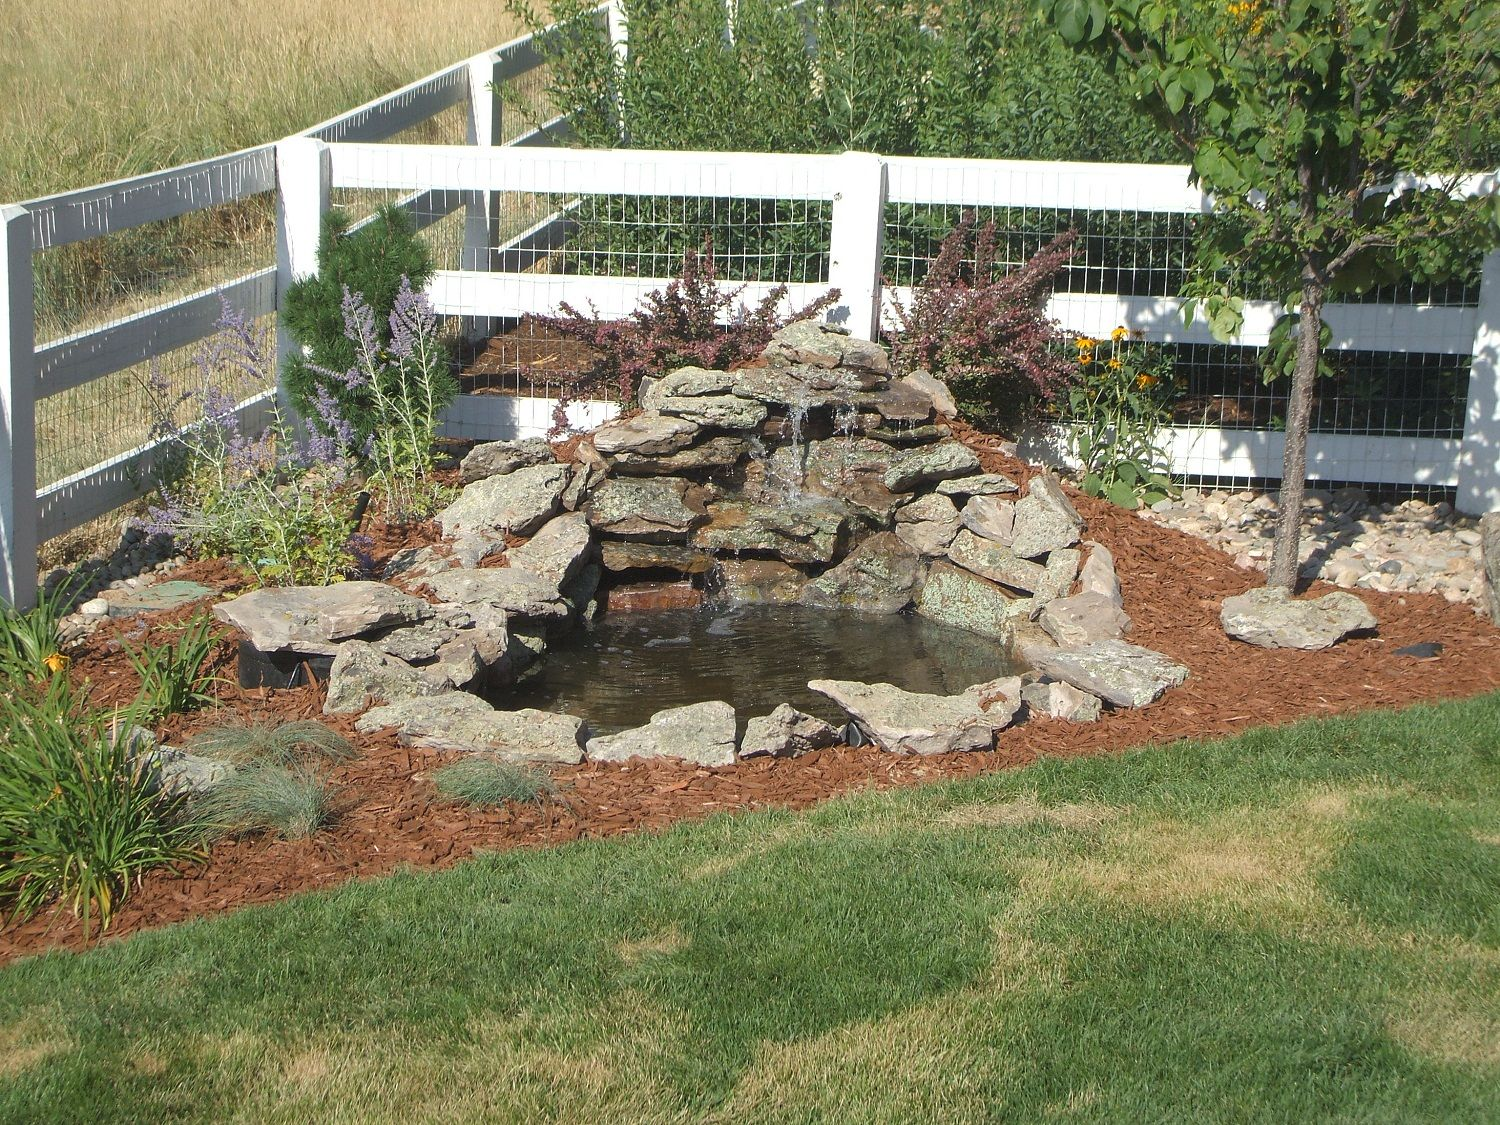 Garden and patio small diy ponds with waterfall and stone border in the corner backyard garden Small backyard waterfalls and ponds